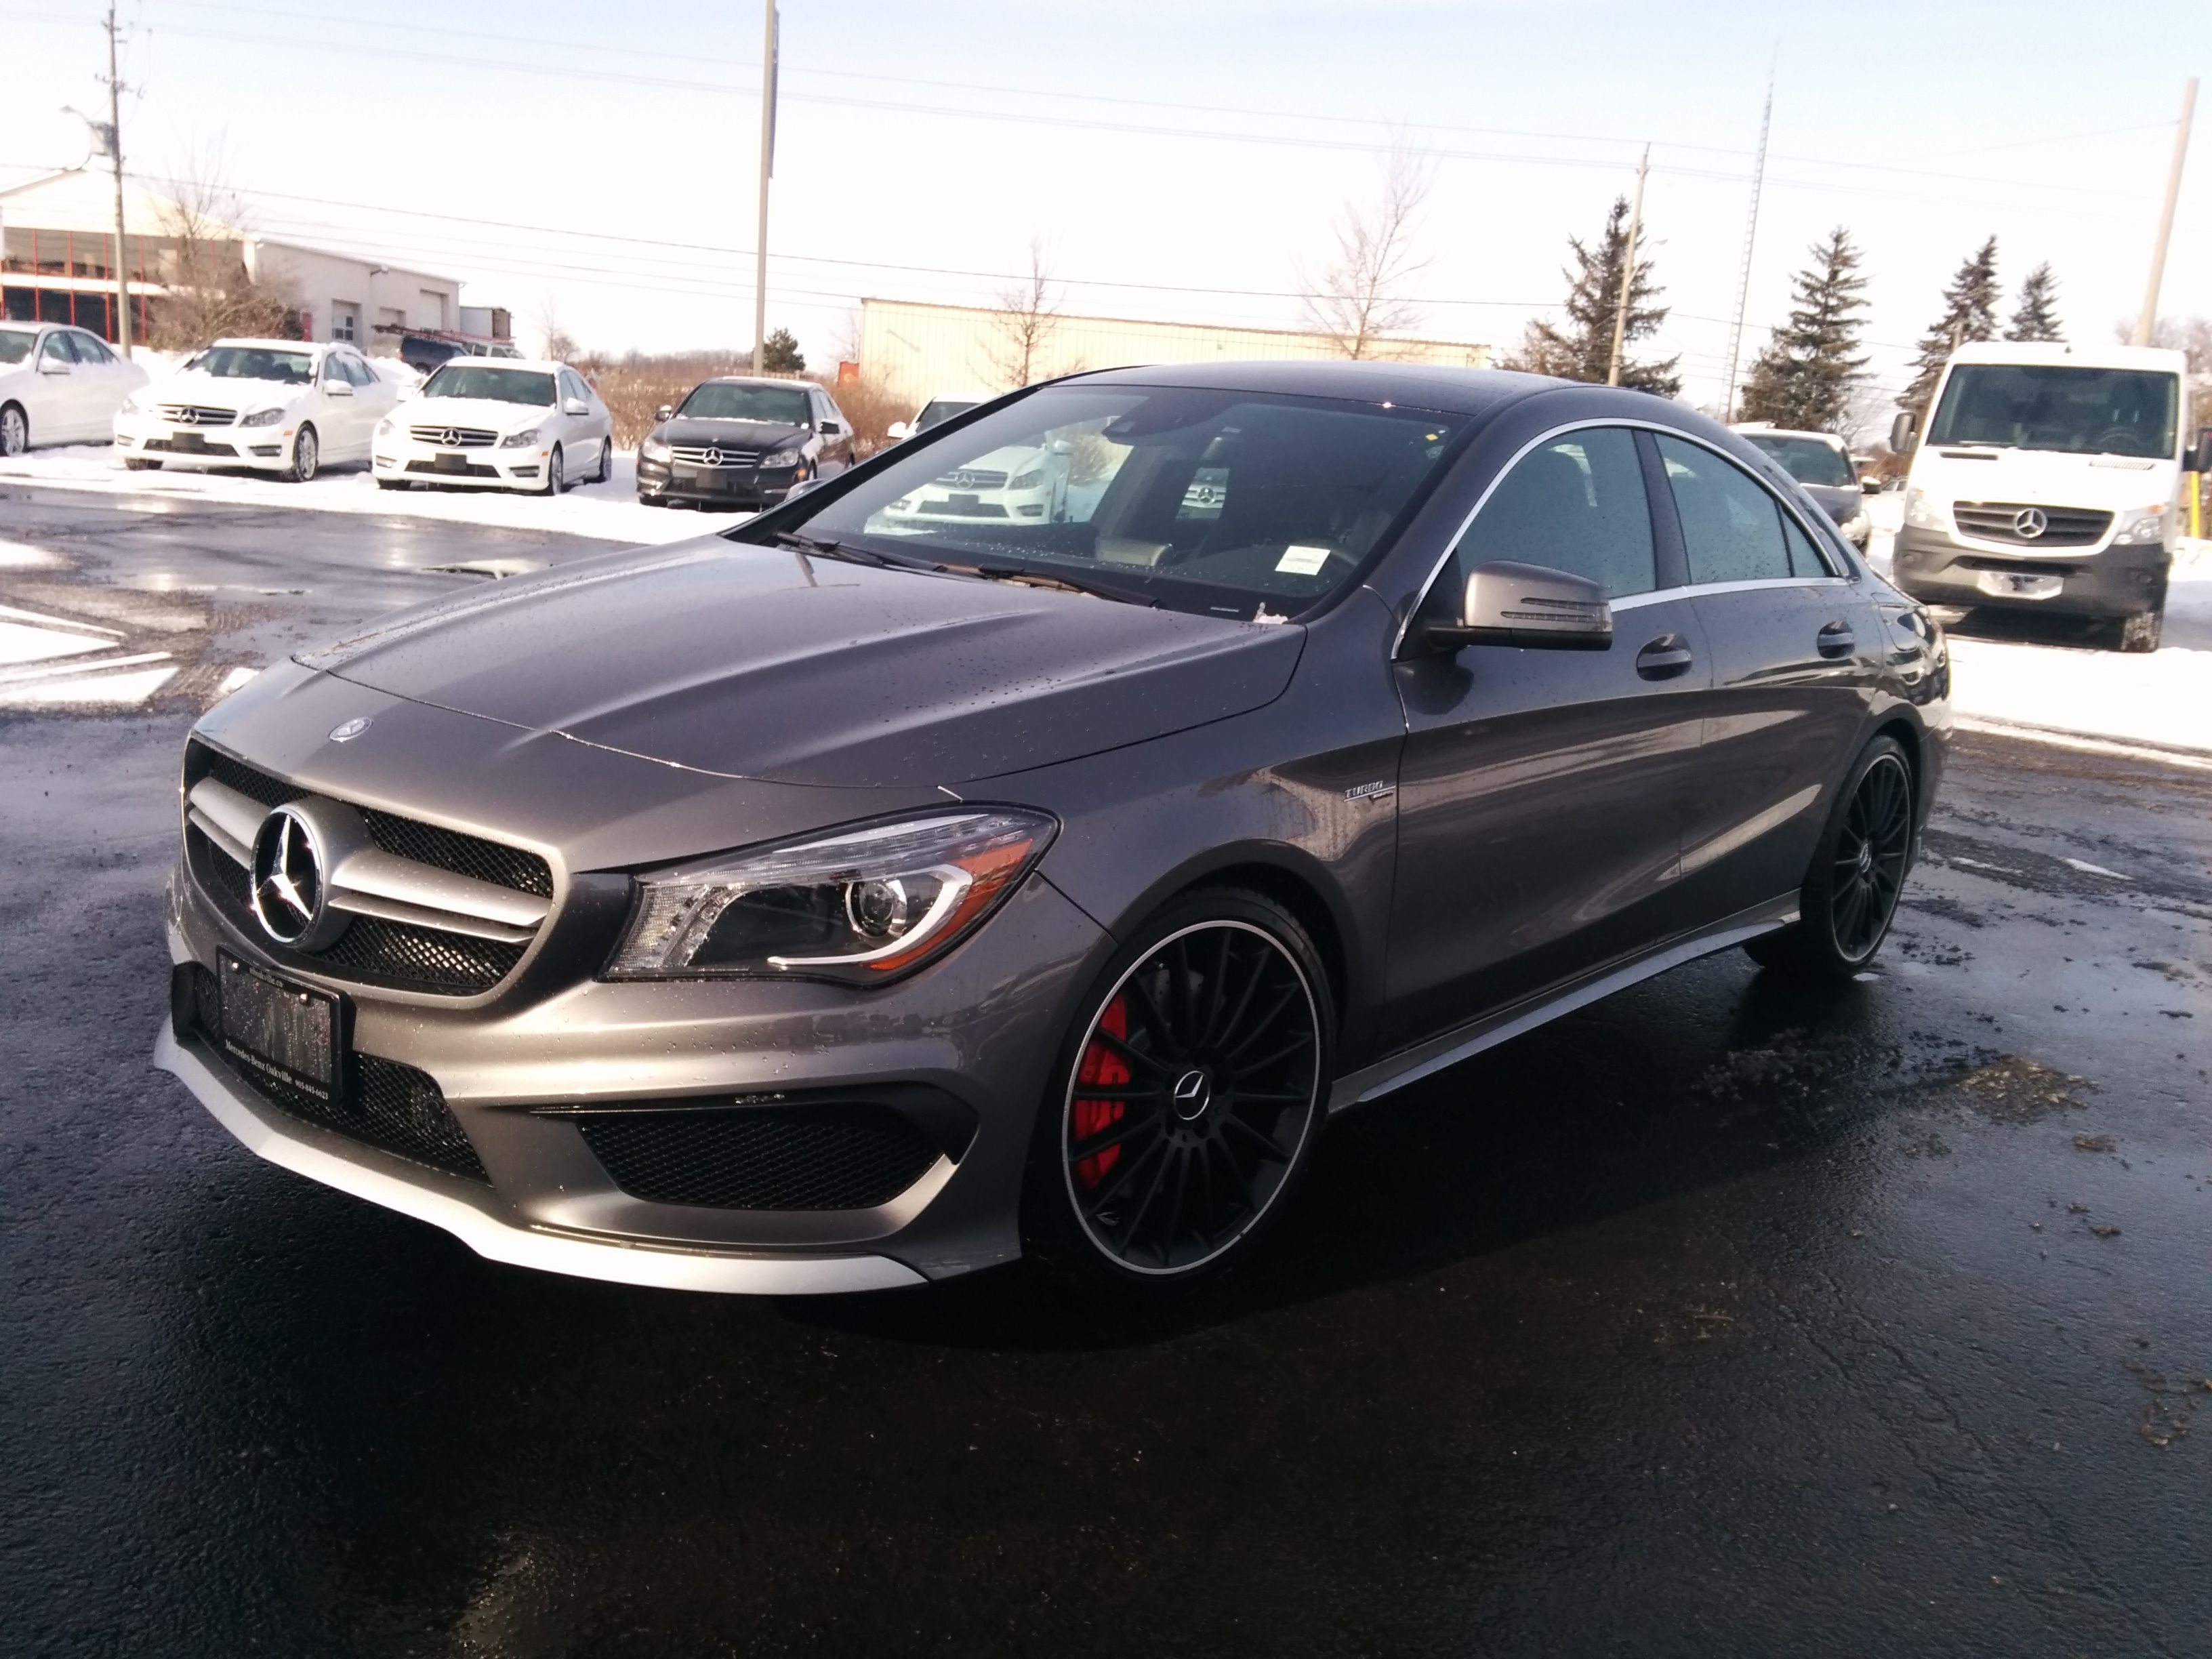 2014 mercedes benz cla 45 amg in mountain grey amg cla mercedes amg pinterest mercedes. Black Bedroom Furniture Sets. Home Design Ideas